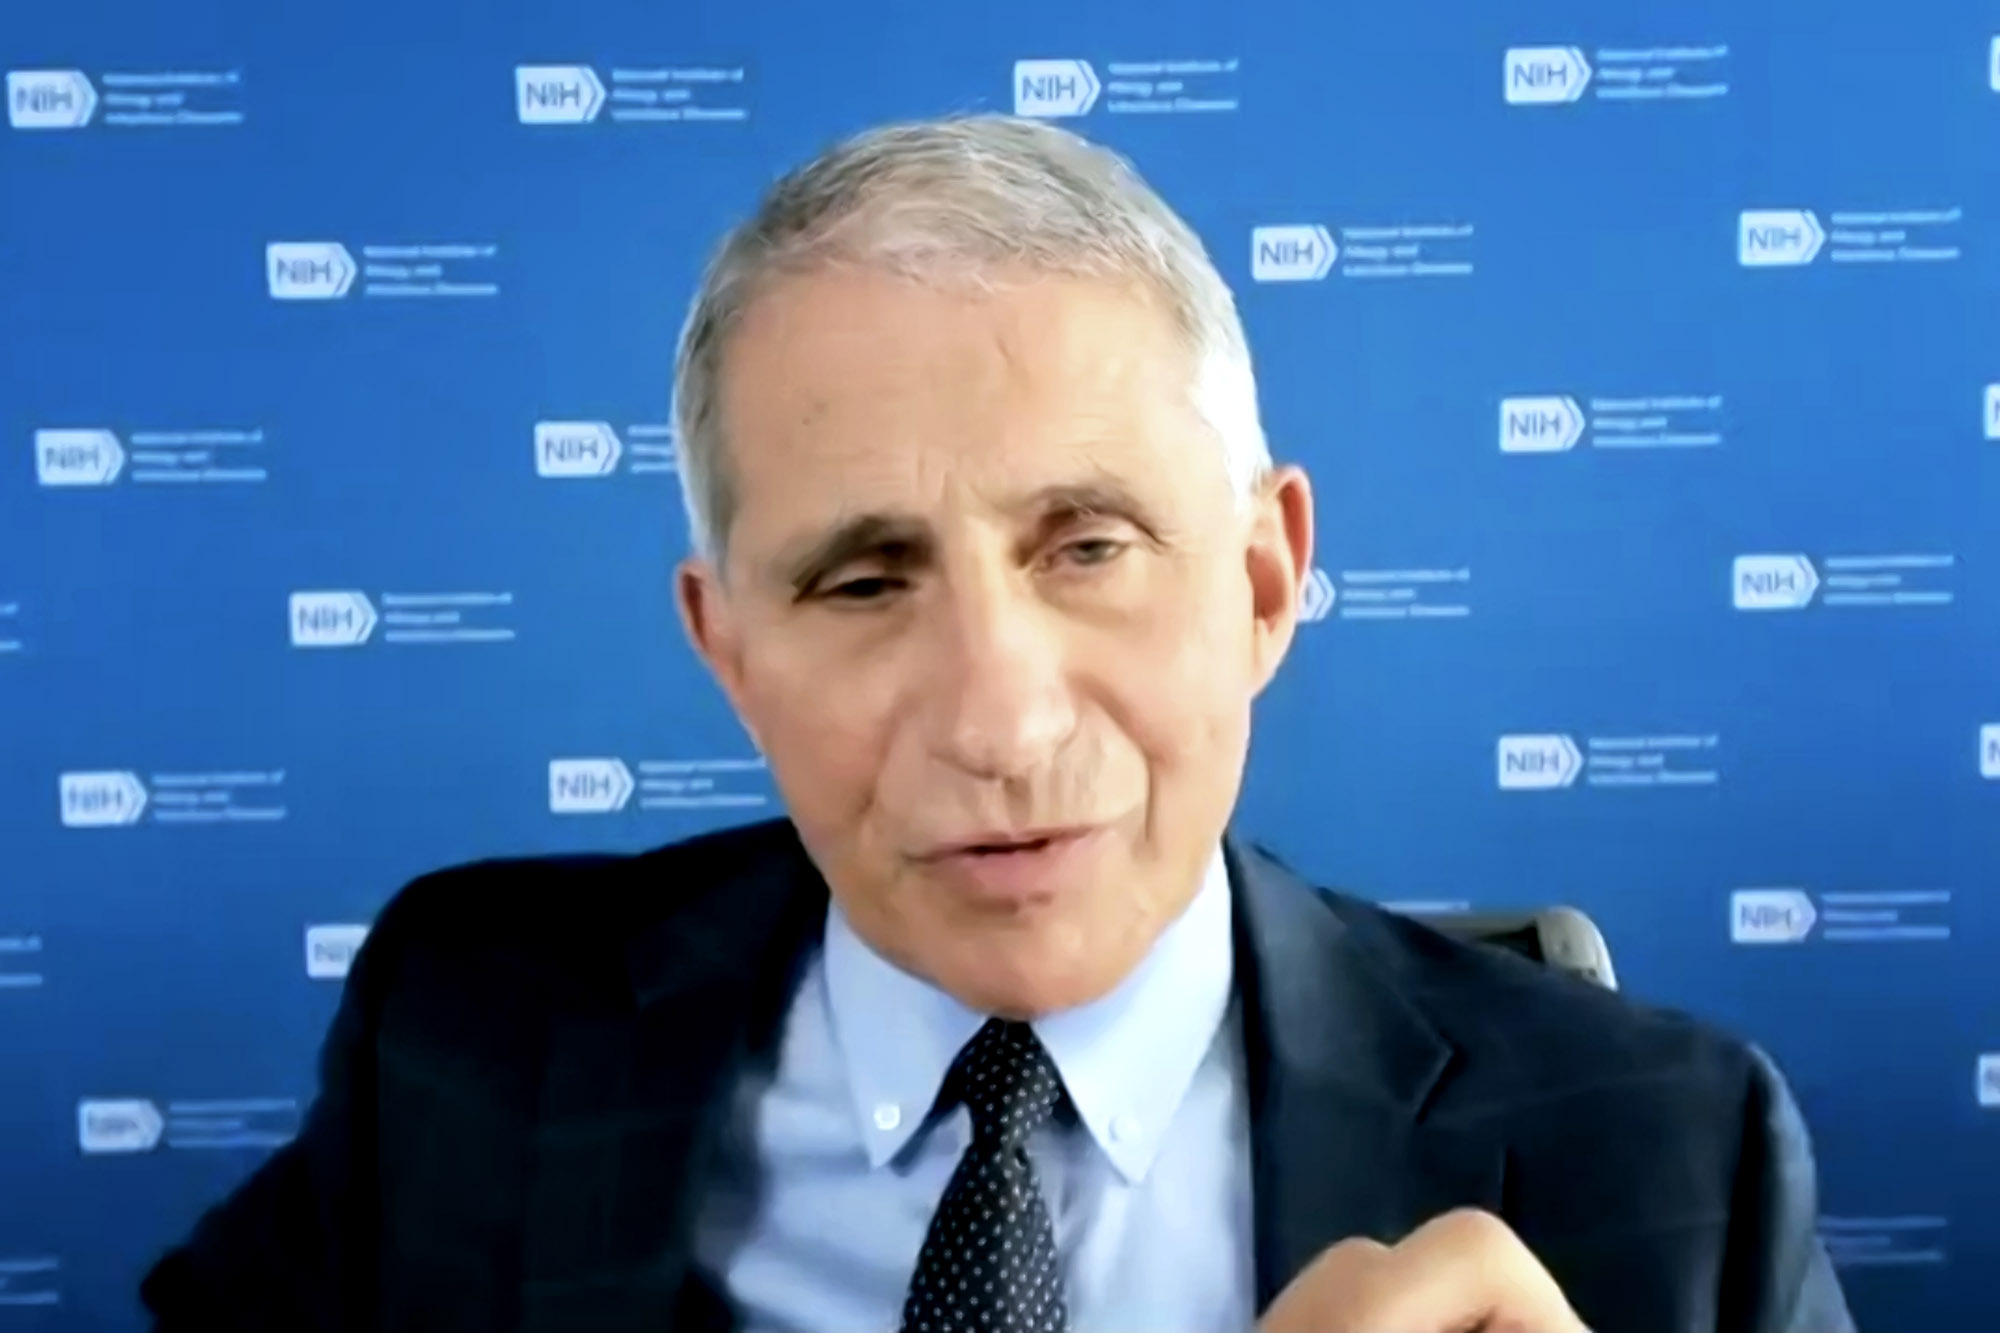 In UVA Webinar, Dr. Anthony Fauci Discusses Vaccines, COVID-19 Lessons Learned